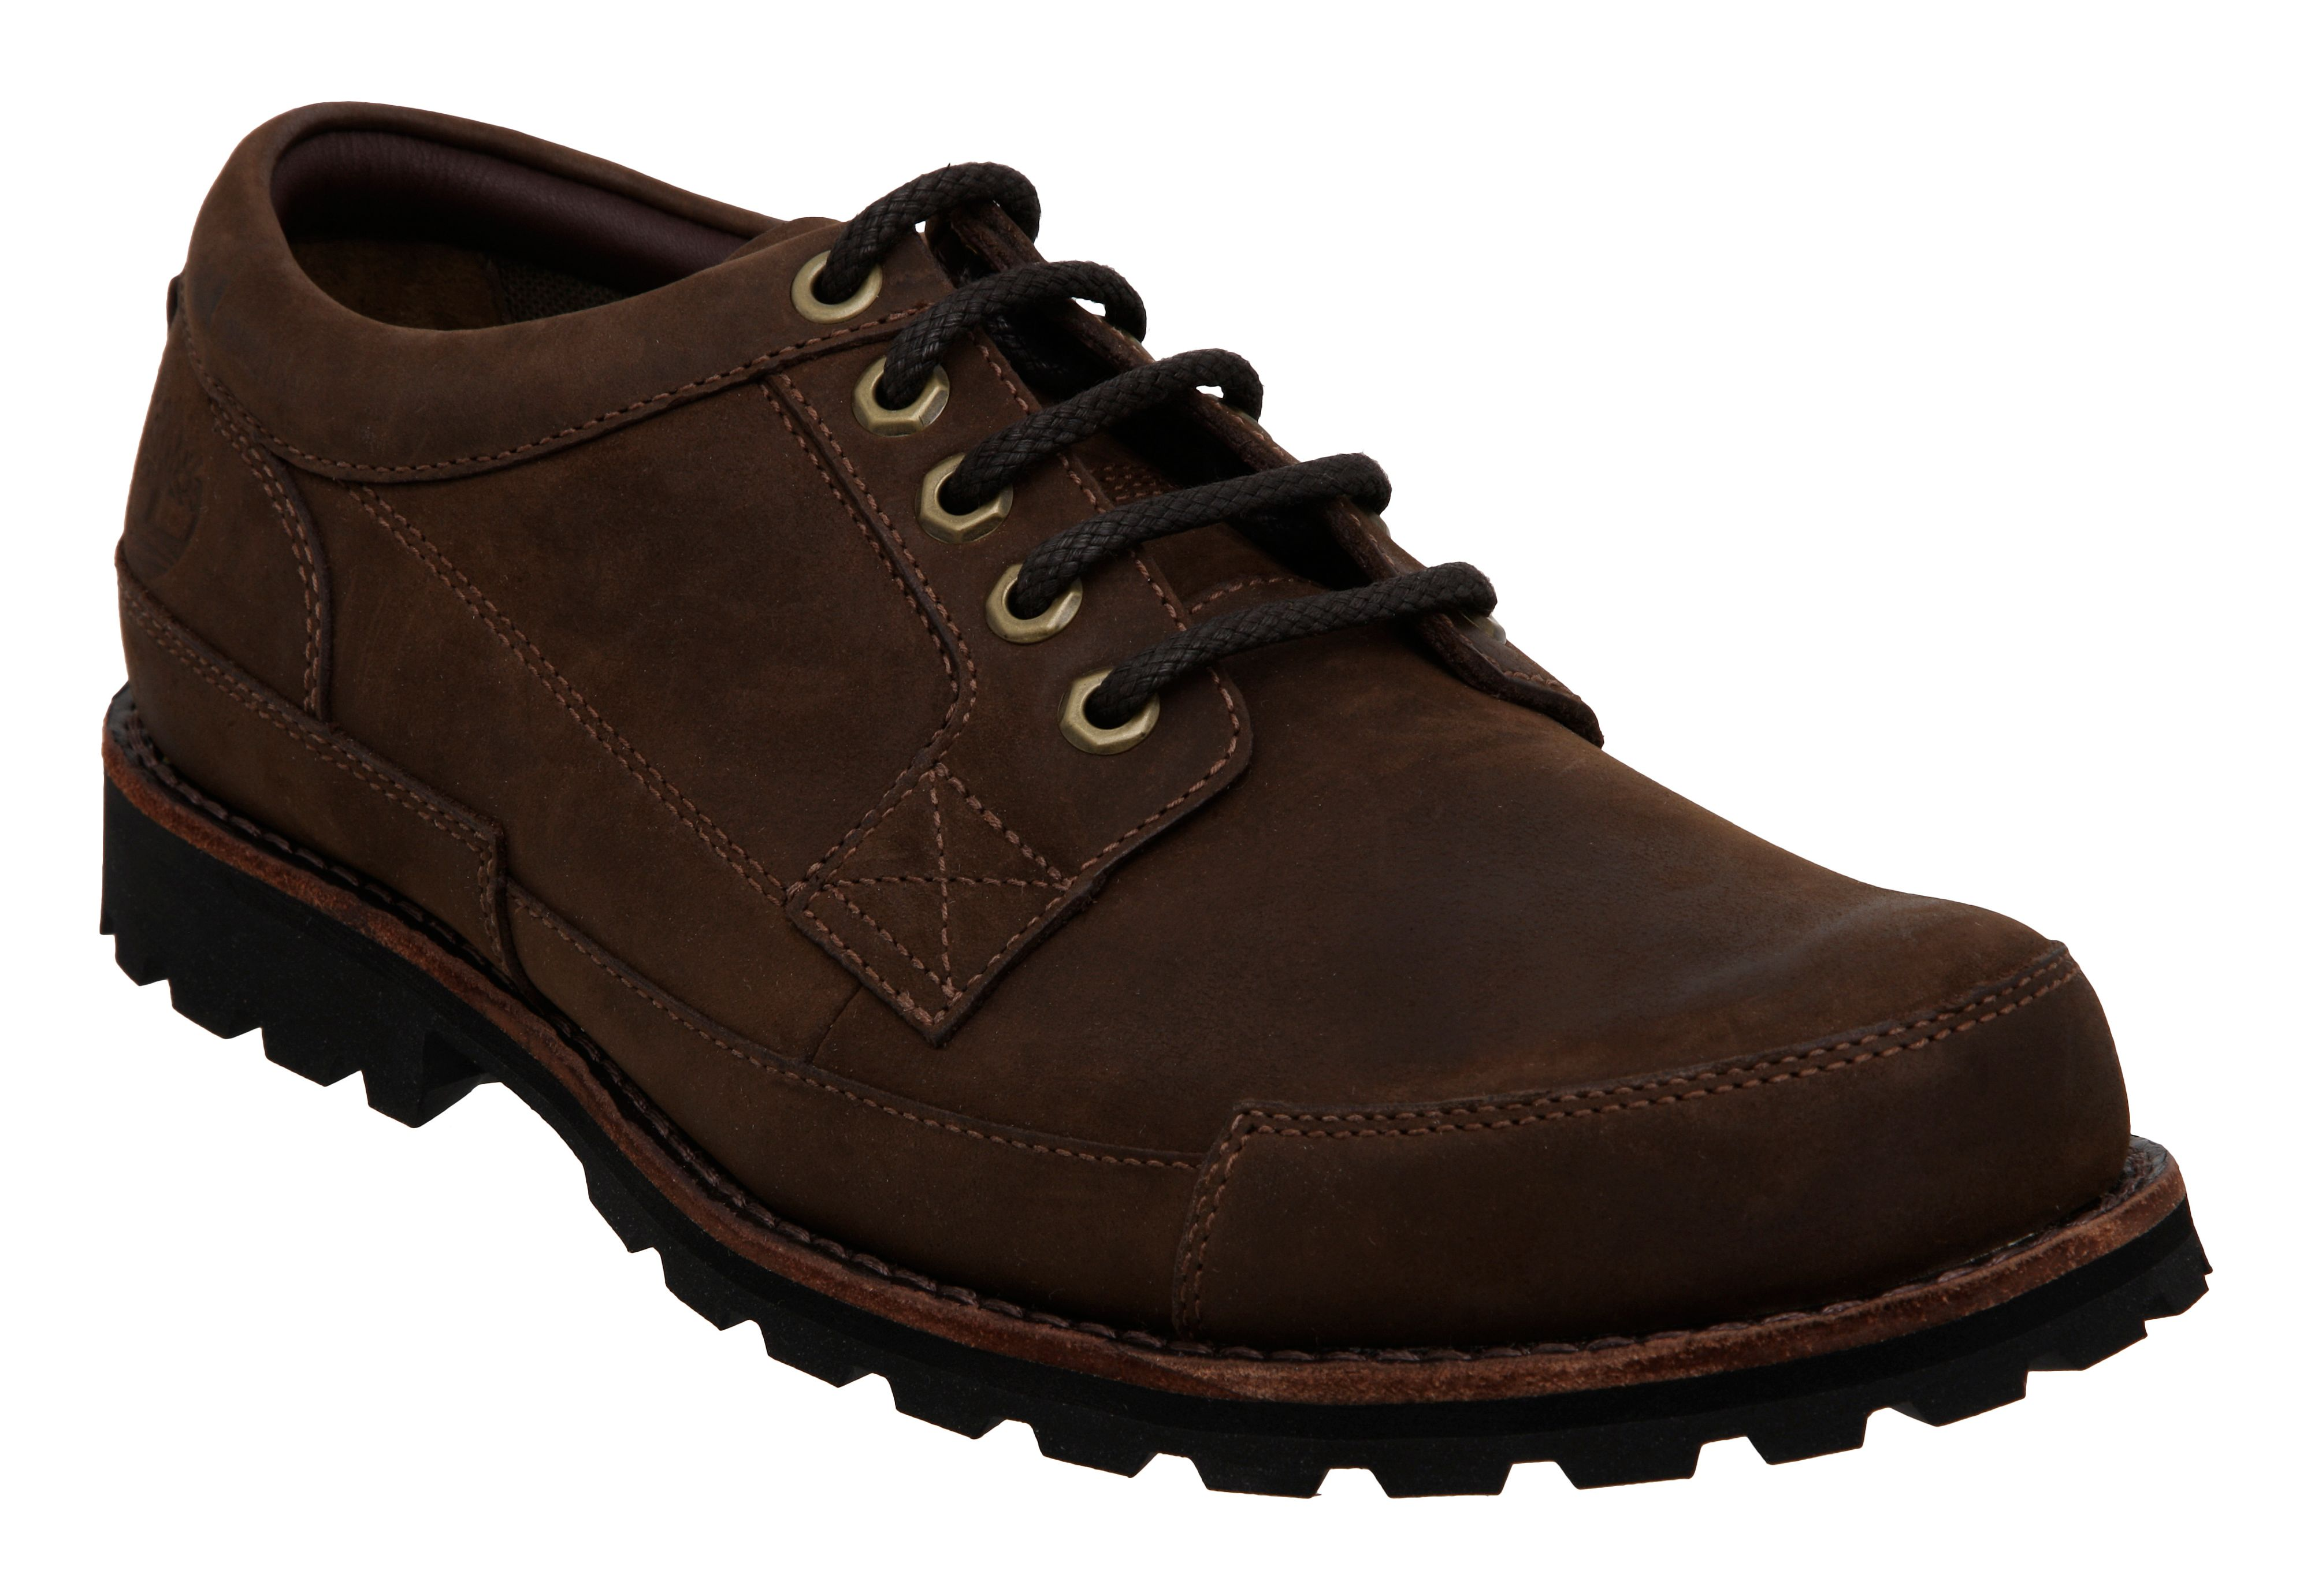 5512R casual shoes